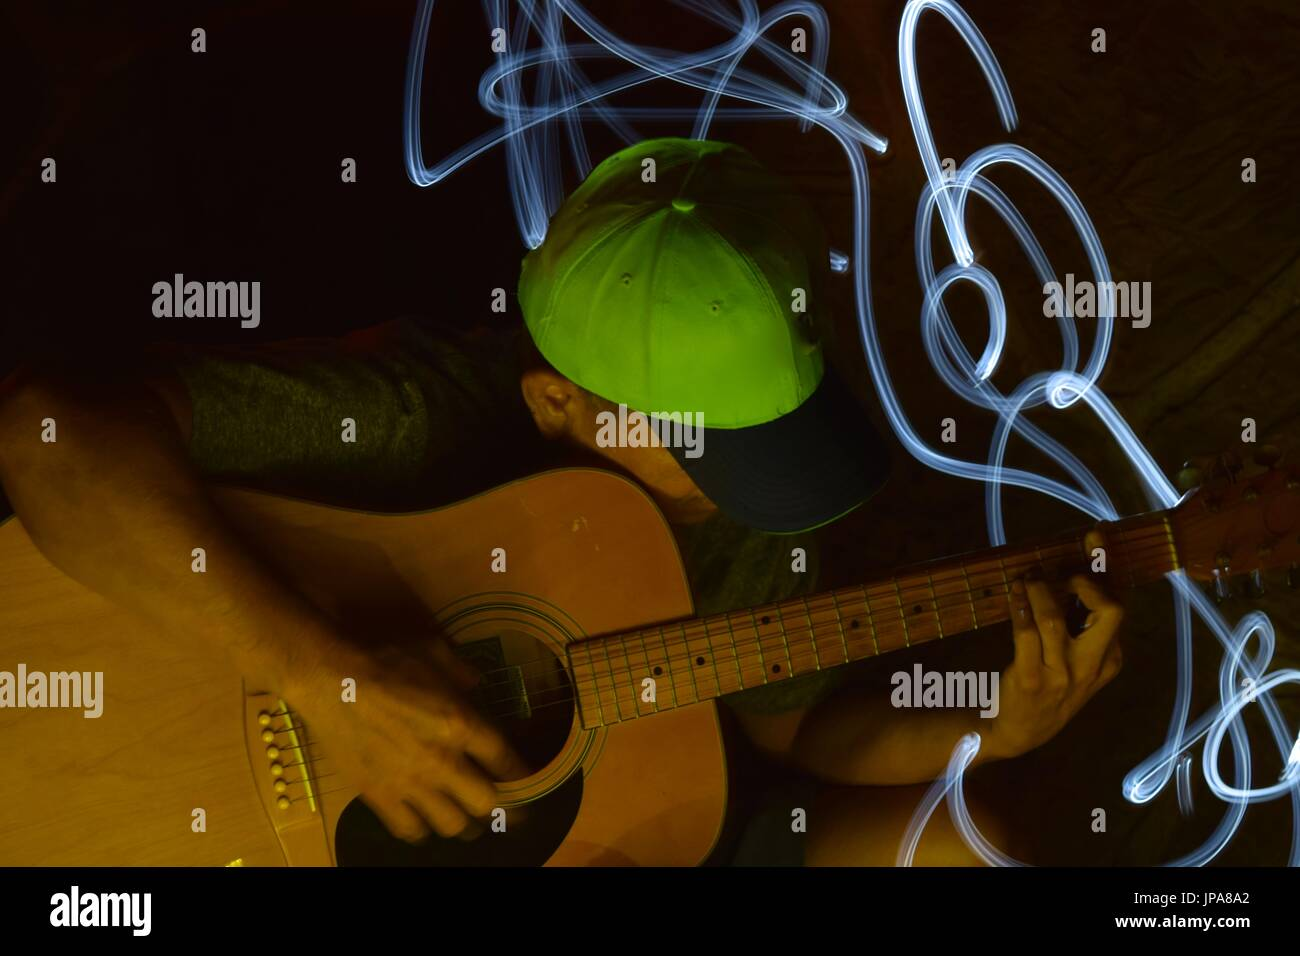 Creative photography using light painting method on a man playing the guitar. - Stock Image